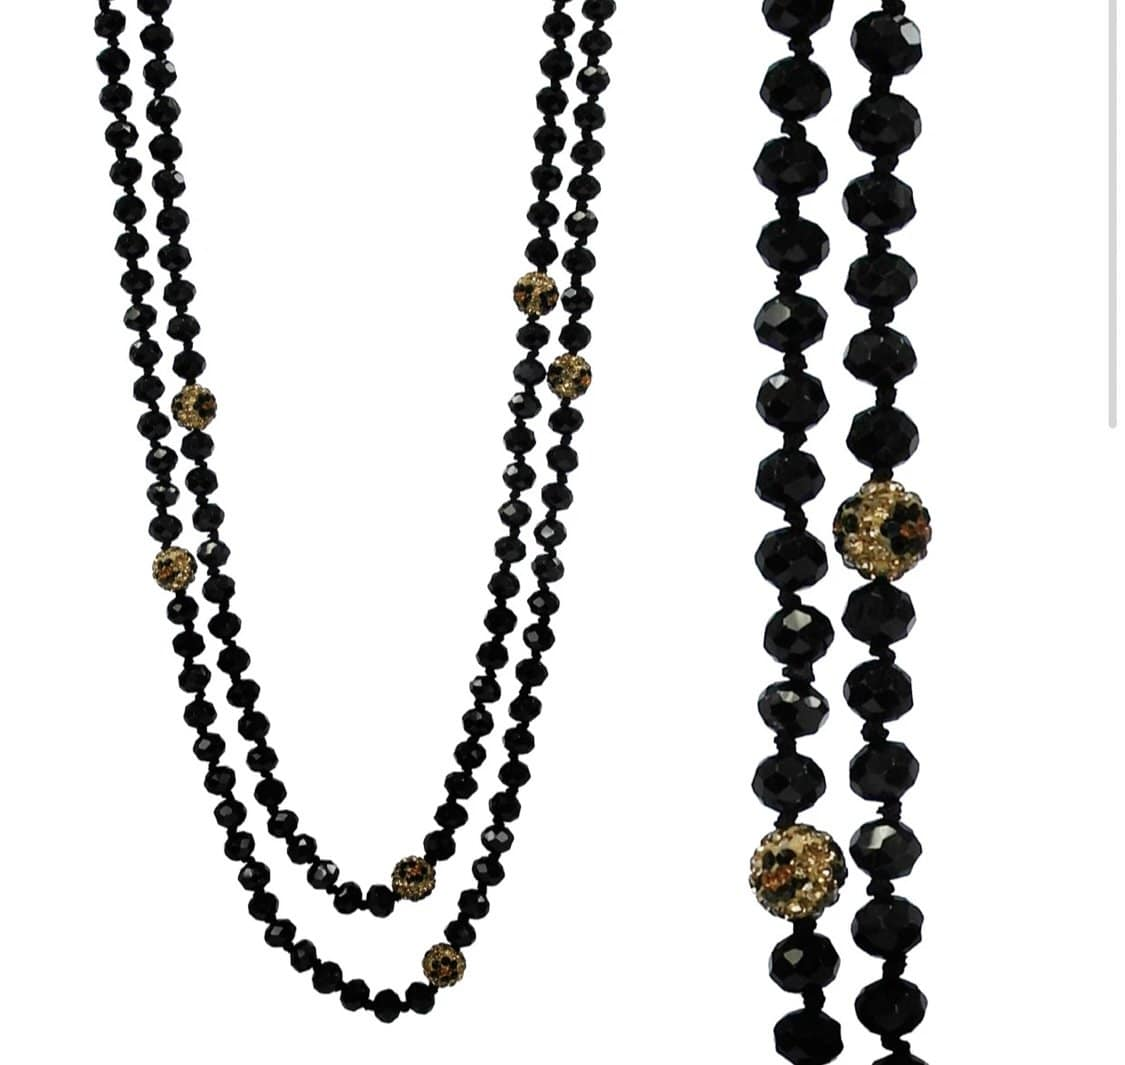 Leopard & Black Knot Necklace Jewelry Rockin The Lace Boutique